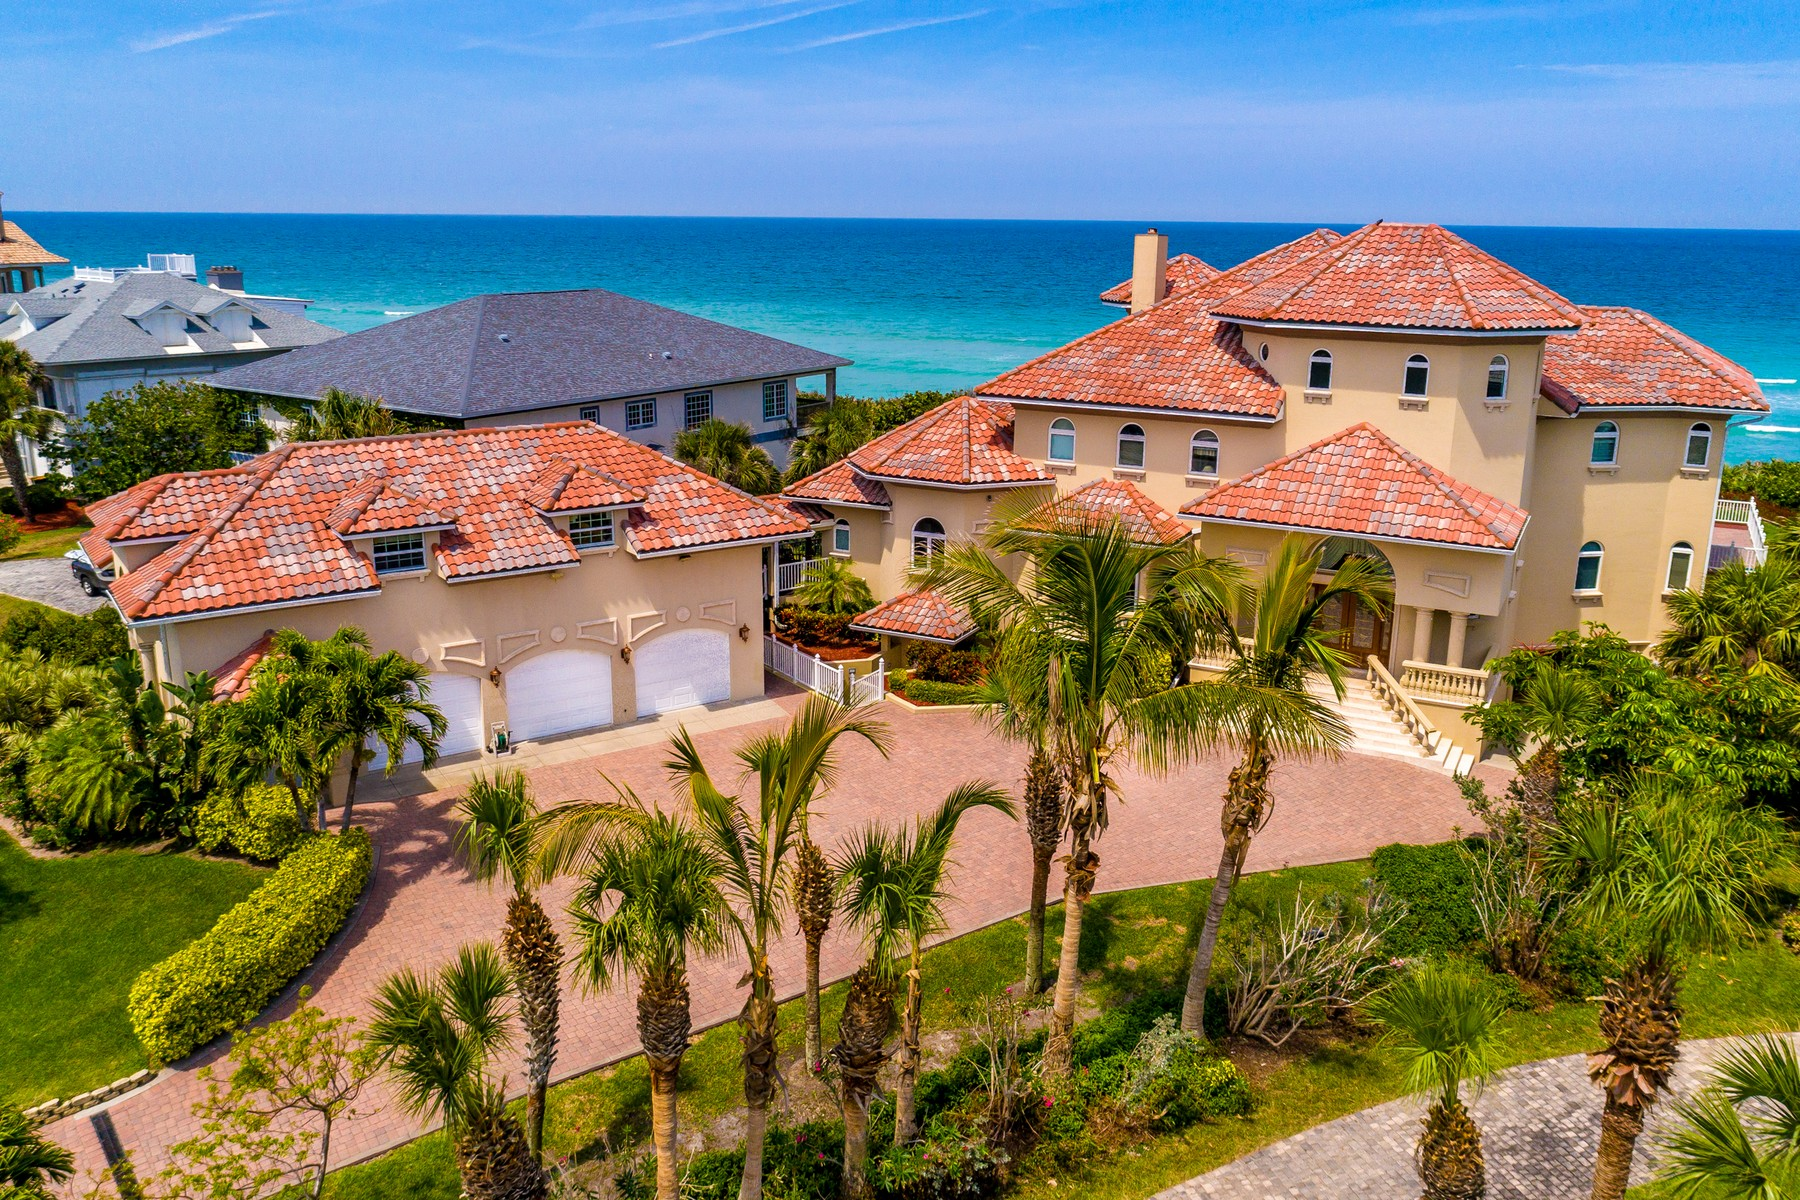 Single Family Home for Sale at Luxurious Mediterranean Oceanfront Masterpiece 8345 Highway A1A, Melbourne Beach, Florida 32951 United States